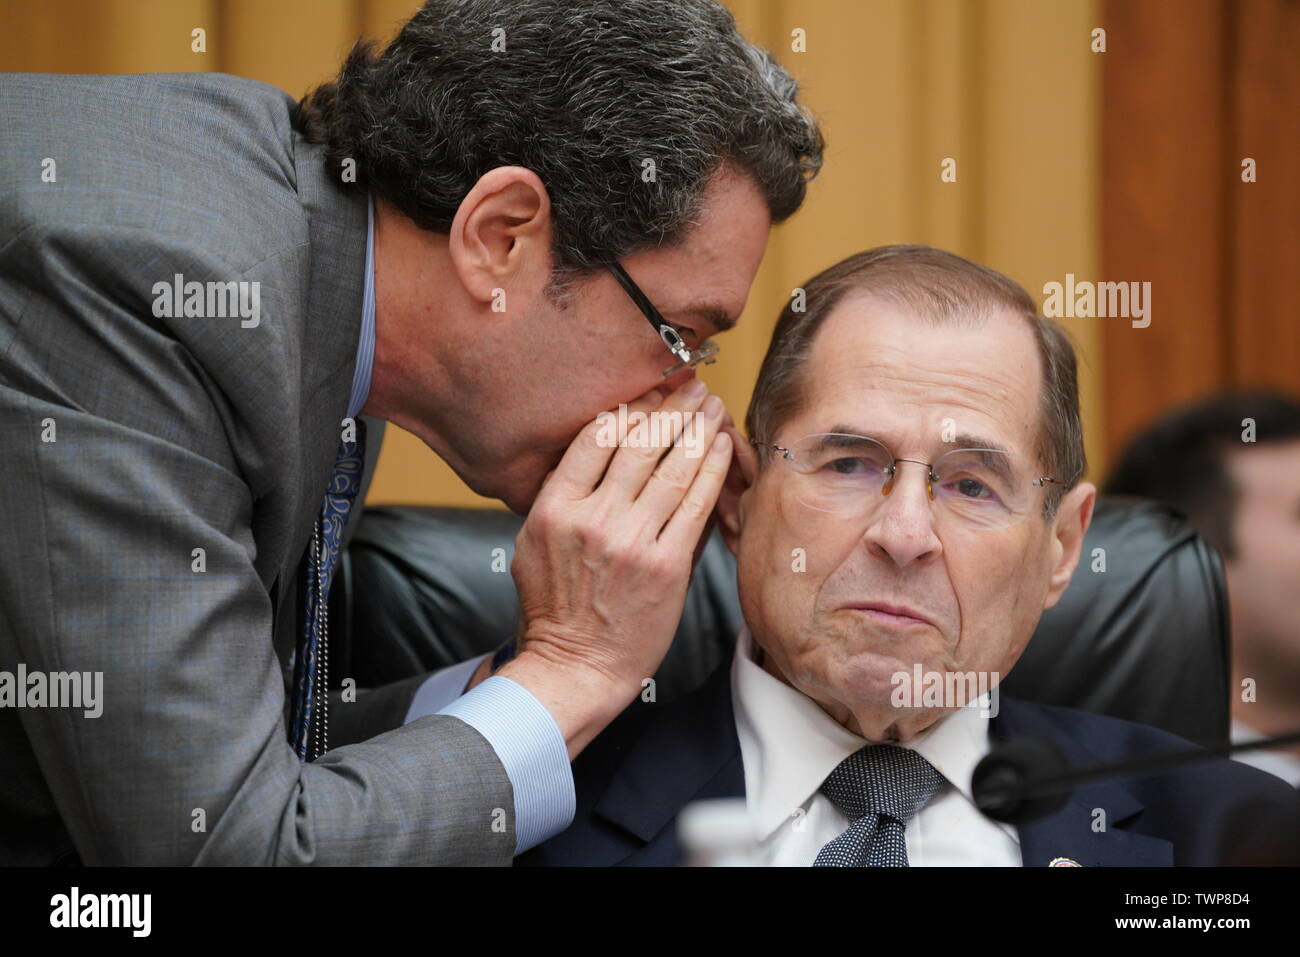 June 20, 2019 - Washington, District of Columbia, U.S. - NORM EISEN (left) speaks to Rep. JERROLD NADLER, D-NY, as Nadler prepares to chair the House Judiciary Committee as it holds the latest in a series of hearings on the Mueller report. Eisen is a Brookings Institution fellow, a former White House lawyer in the Obama administration and an outspoken Trump critic, and is serving as part-time counsel to the committee to help Nadler conduct oversight of the Justice Department and special counsel R. Mueller's Russia probe. The committee has been under pressure from some Democrats to begin impeac Stock Photo